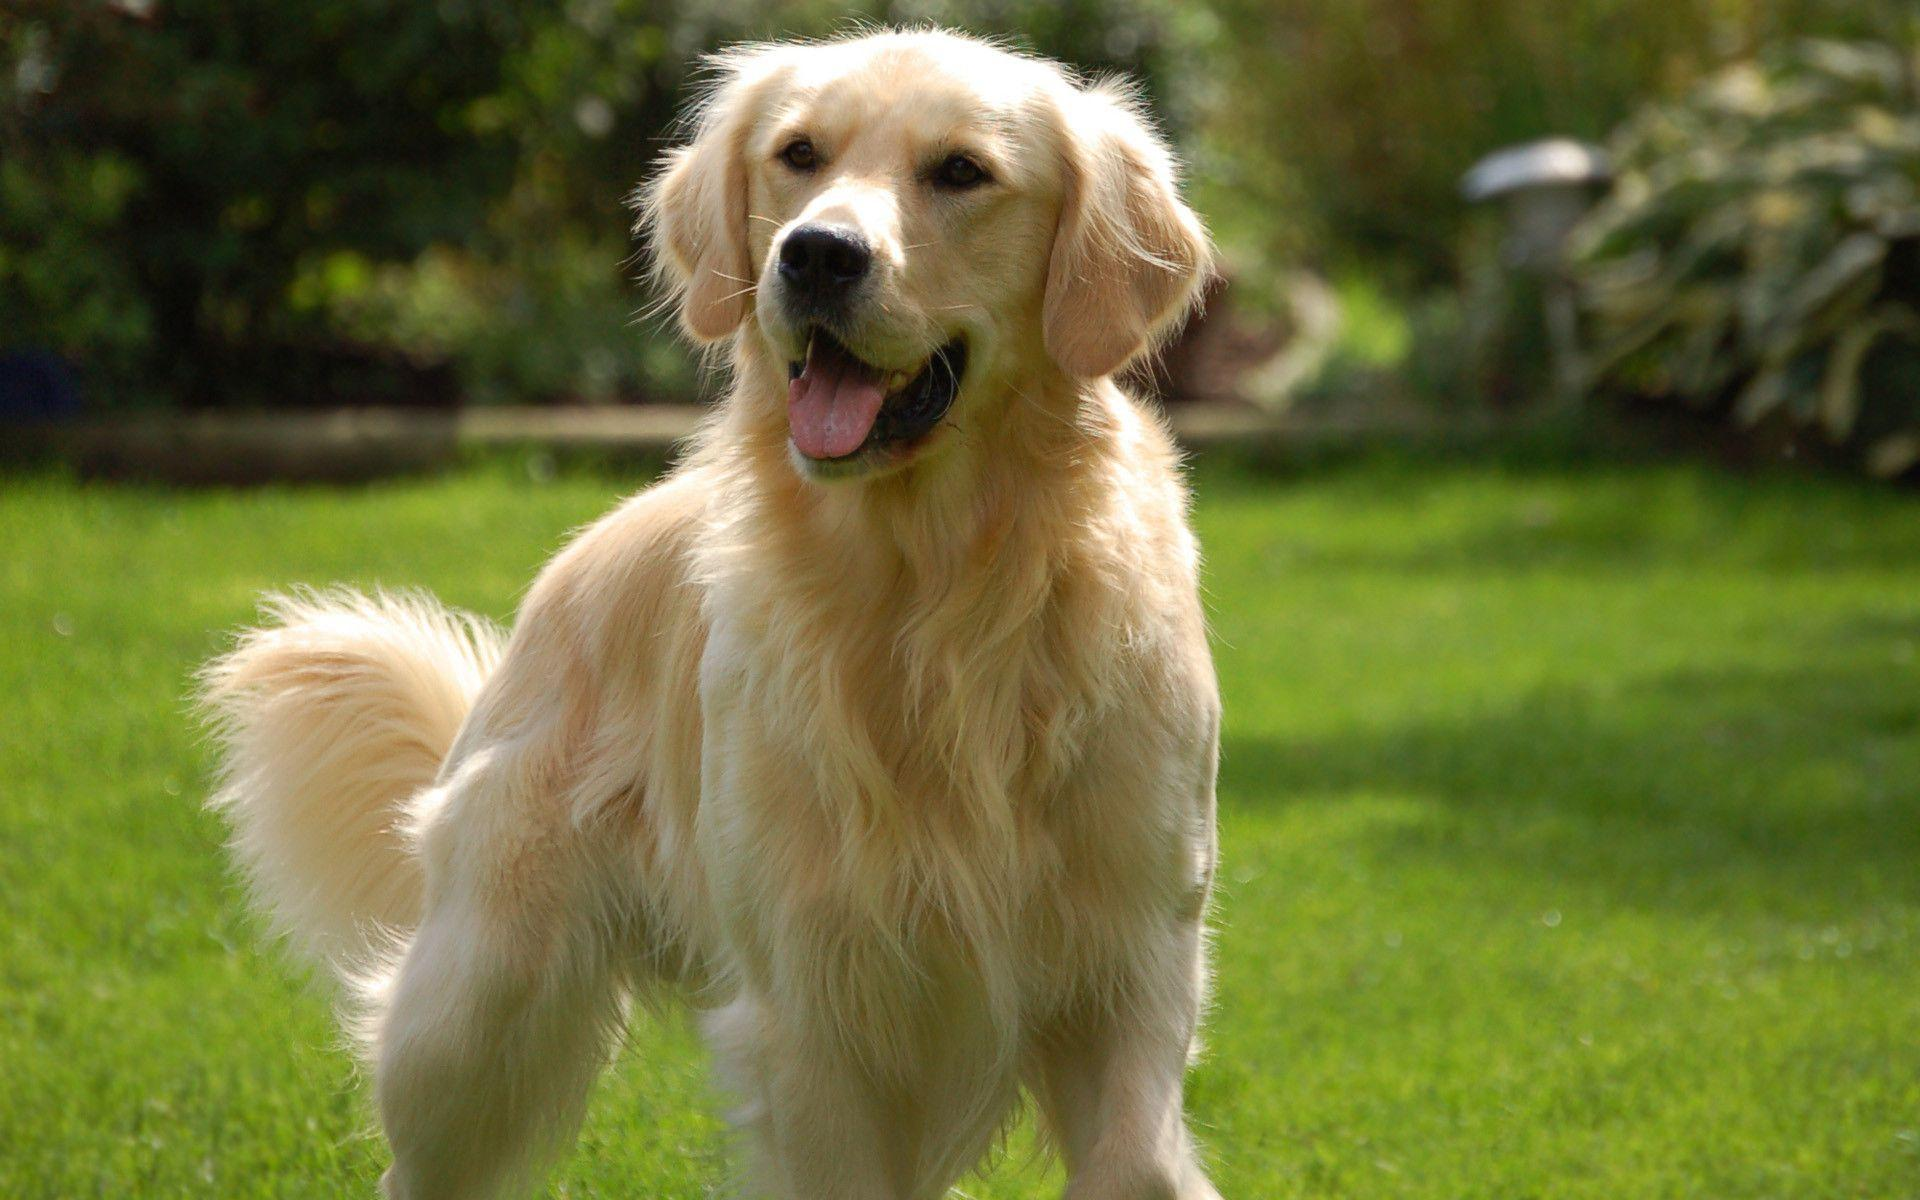 50 Golden Retriever Wallpapers | Golden Retriever Backgrounds